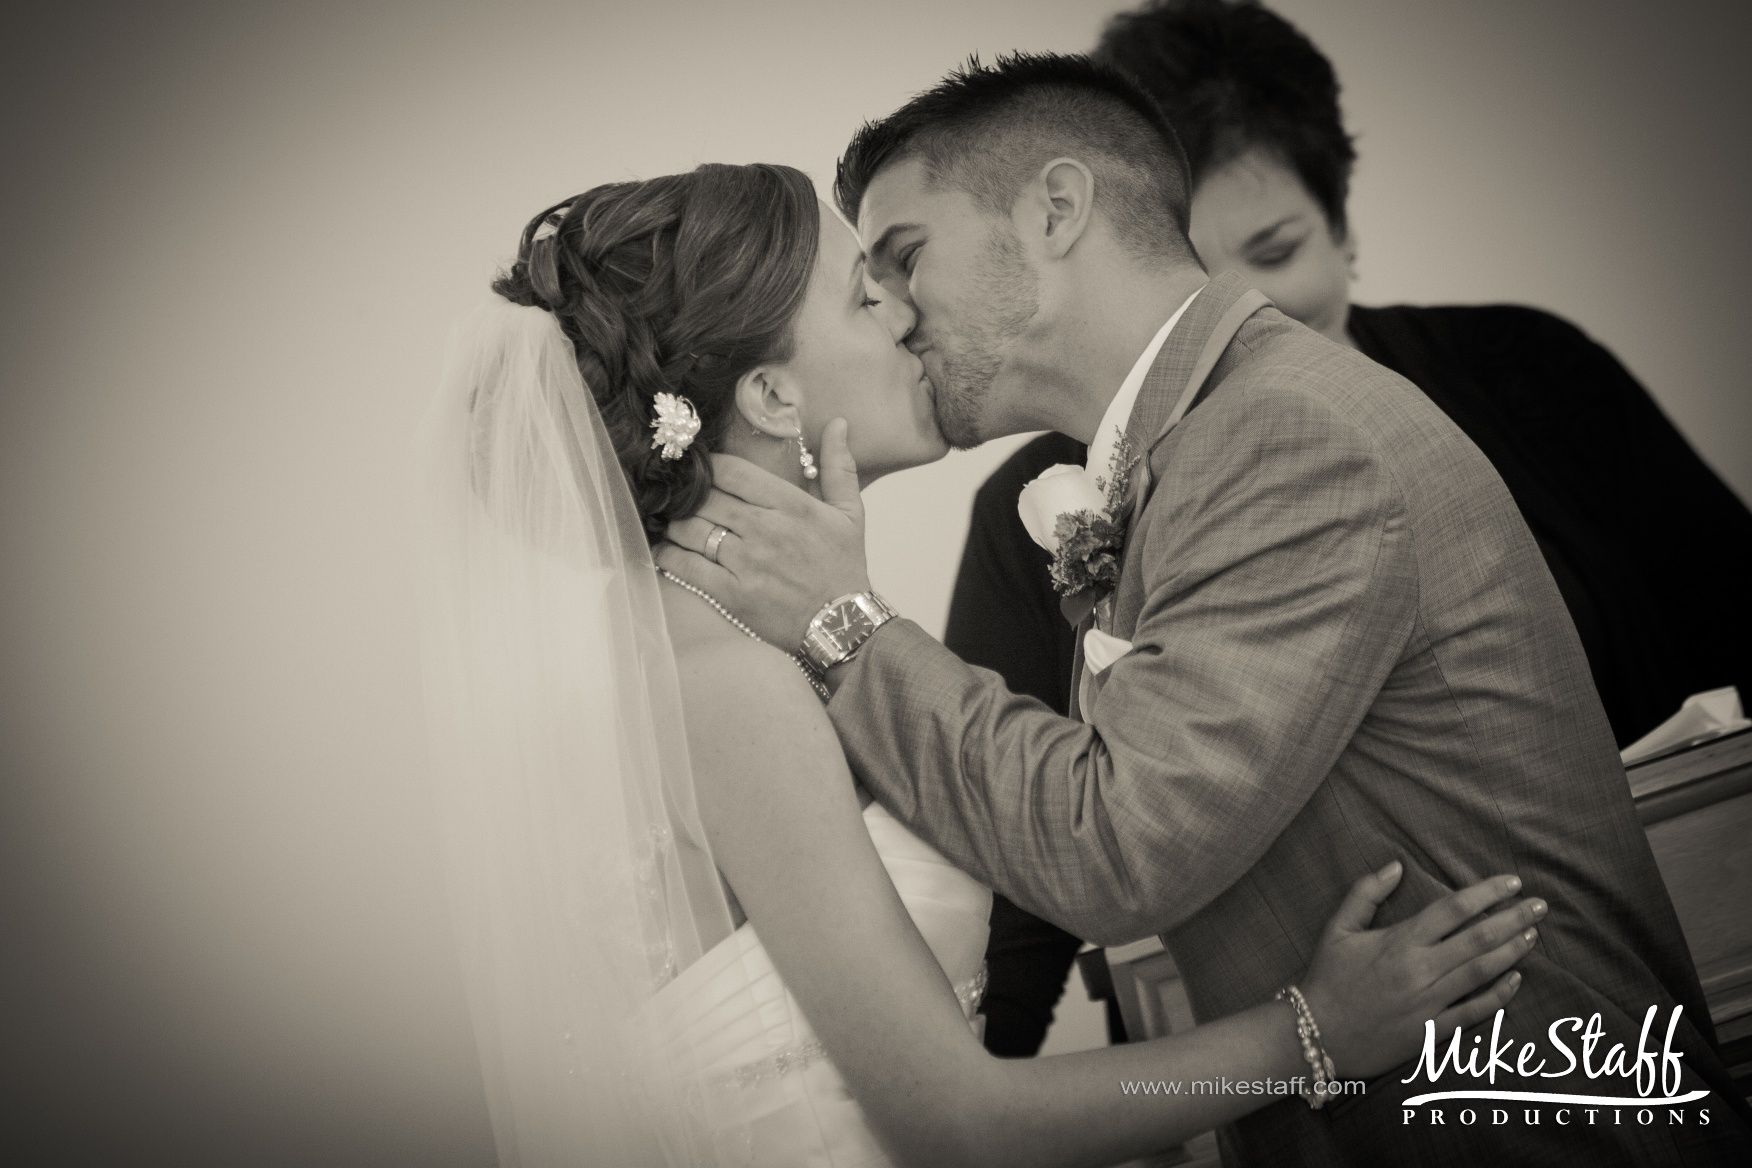 You may now kiss the bride - in front of all your friends and family. Tips for discussing your first kiss.  #WeddingPlanning #MikeStaffProductions